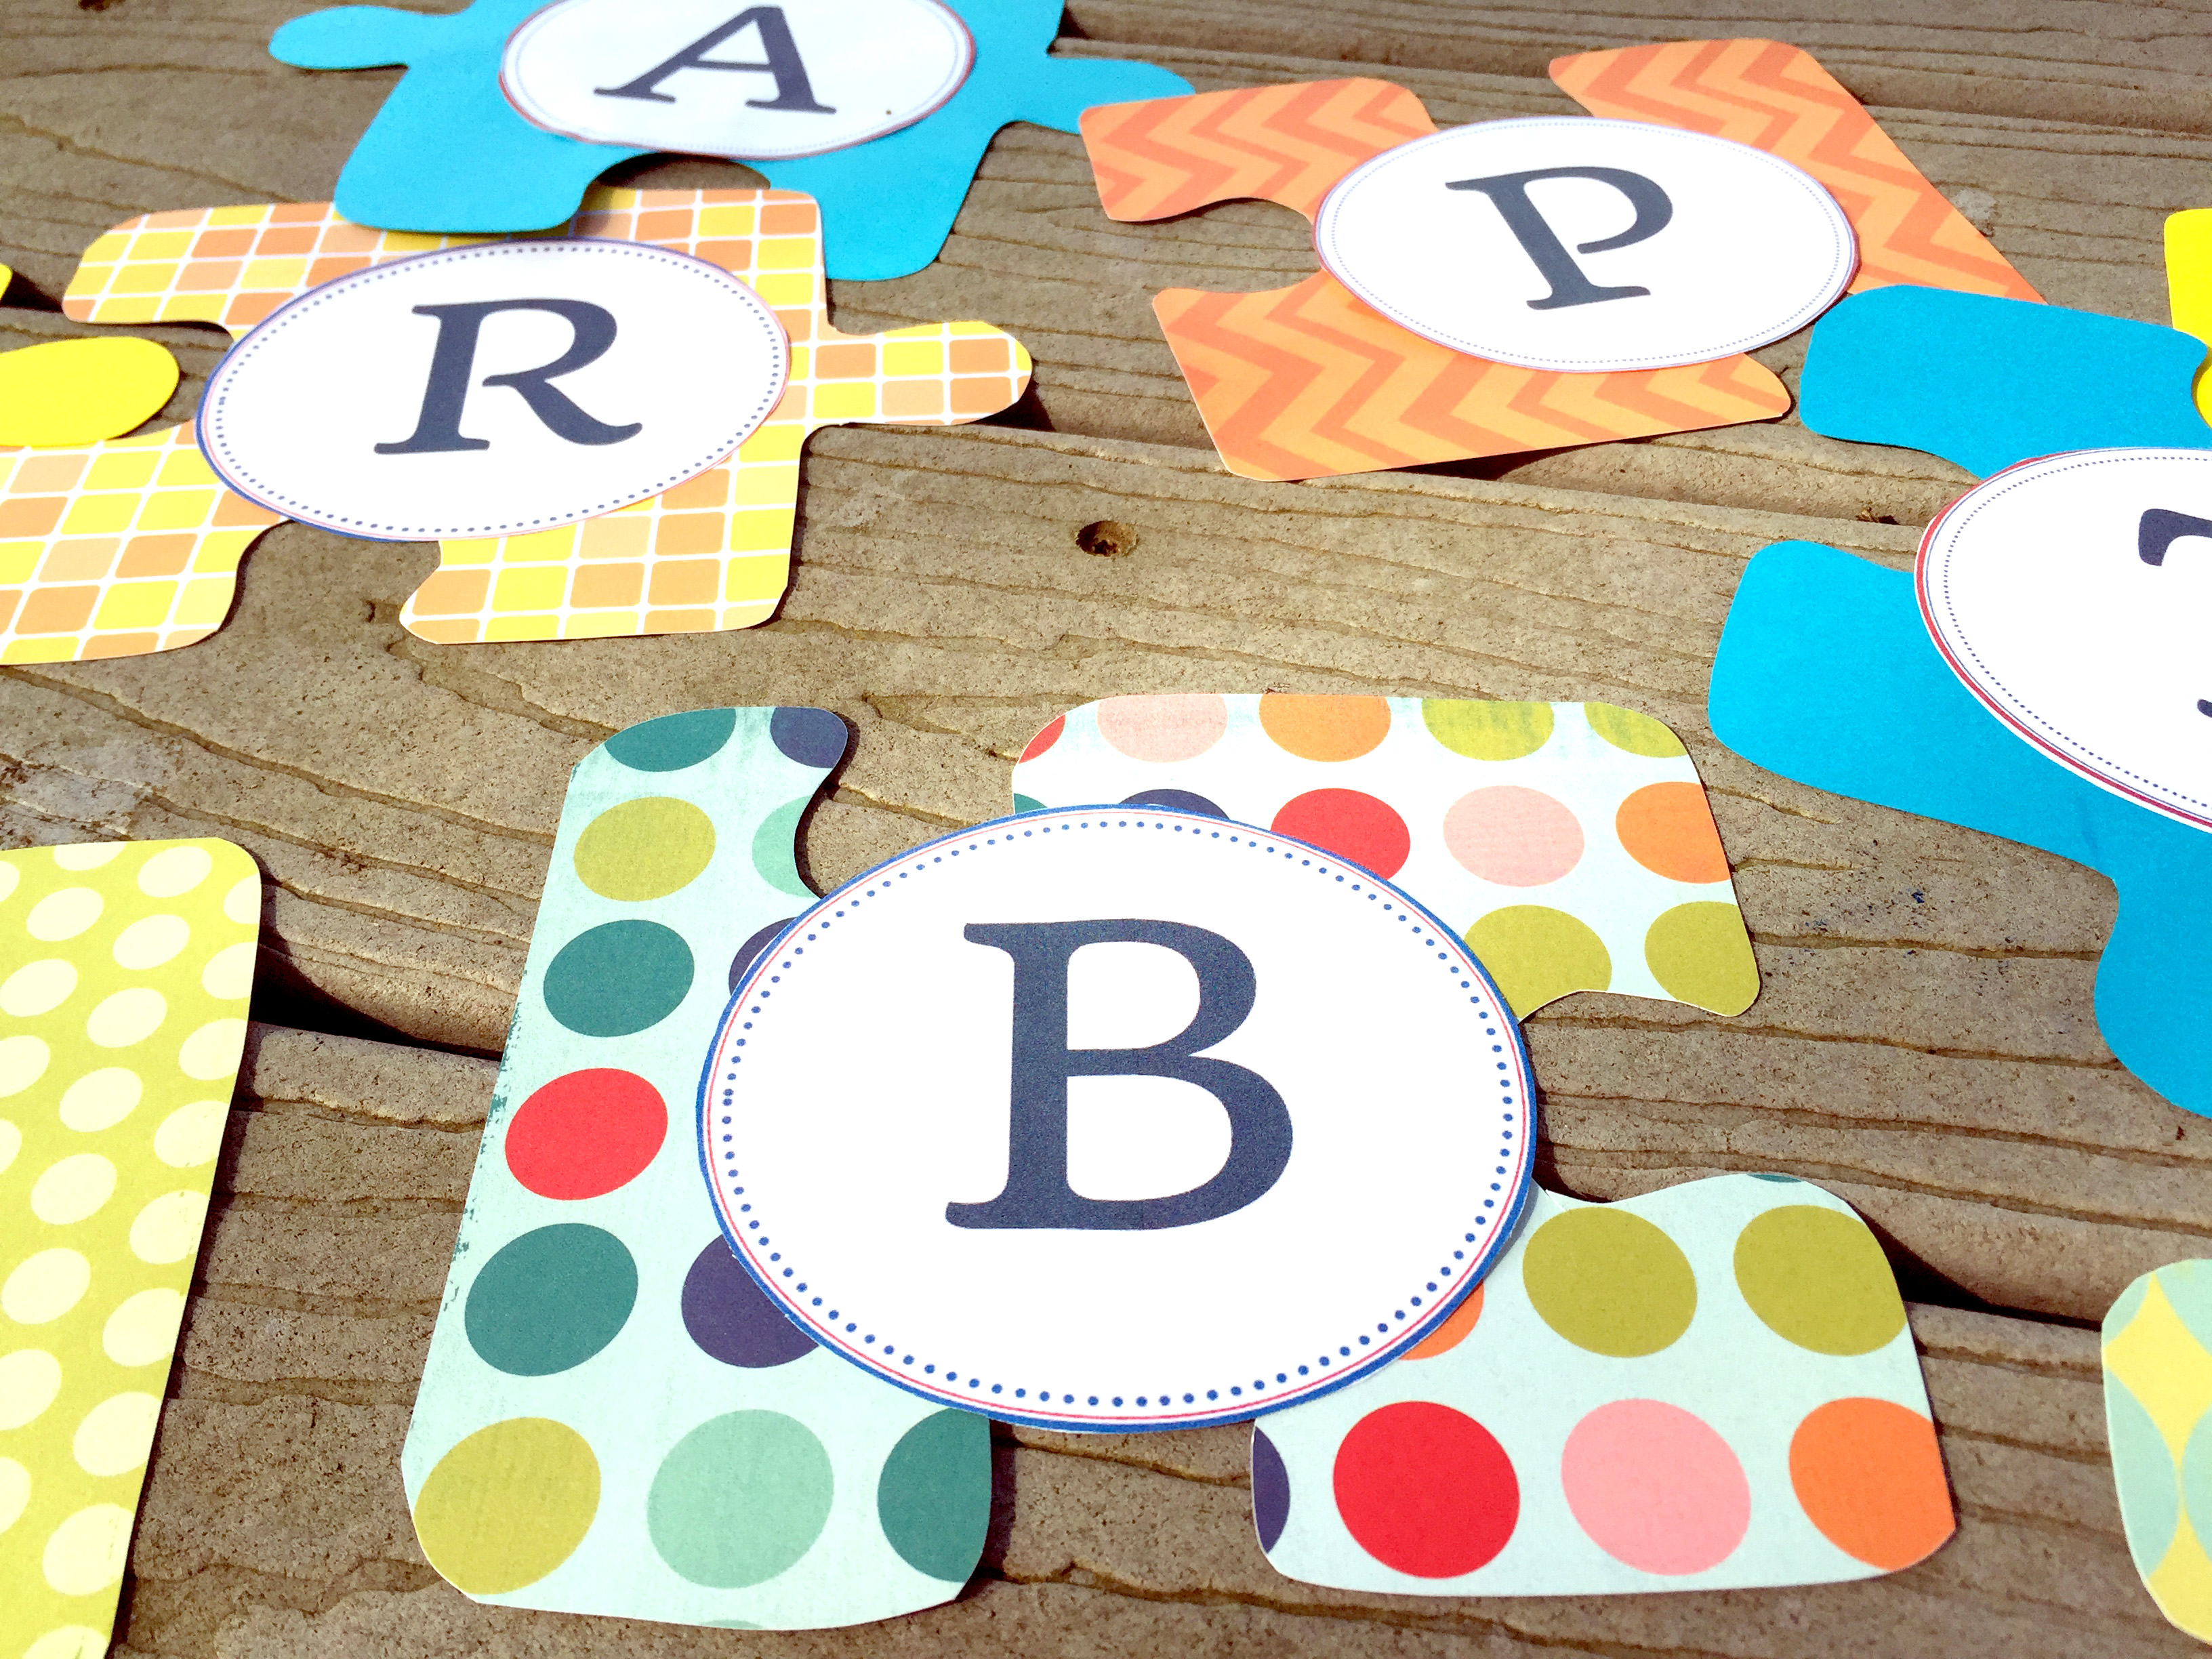 Make your own DIY party banner with these free printable banner letters!